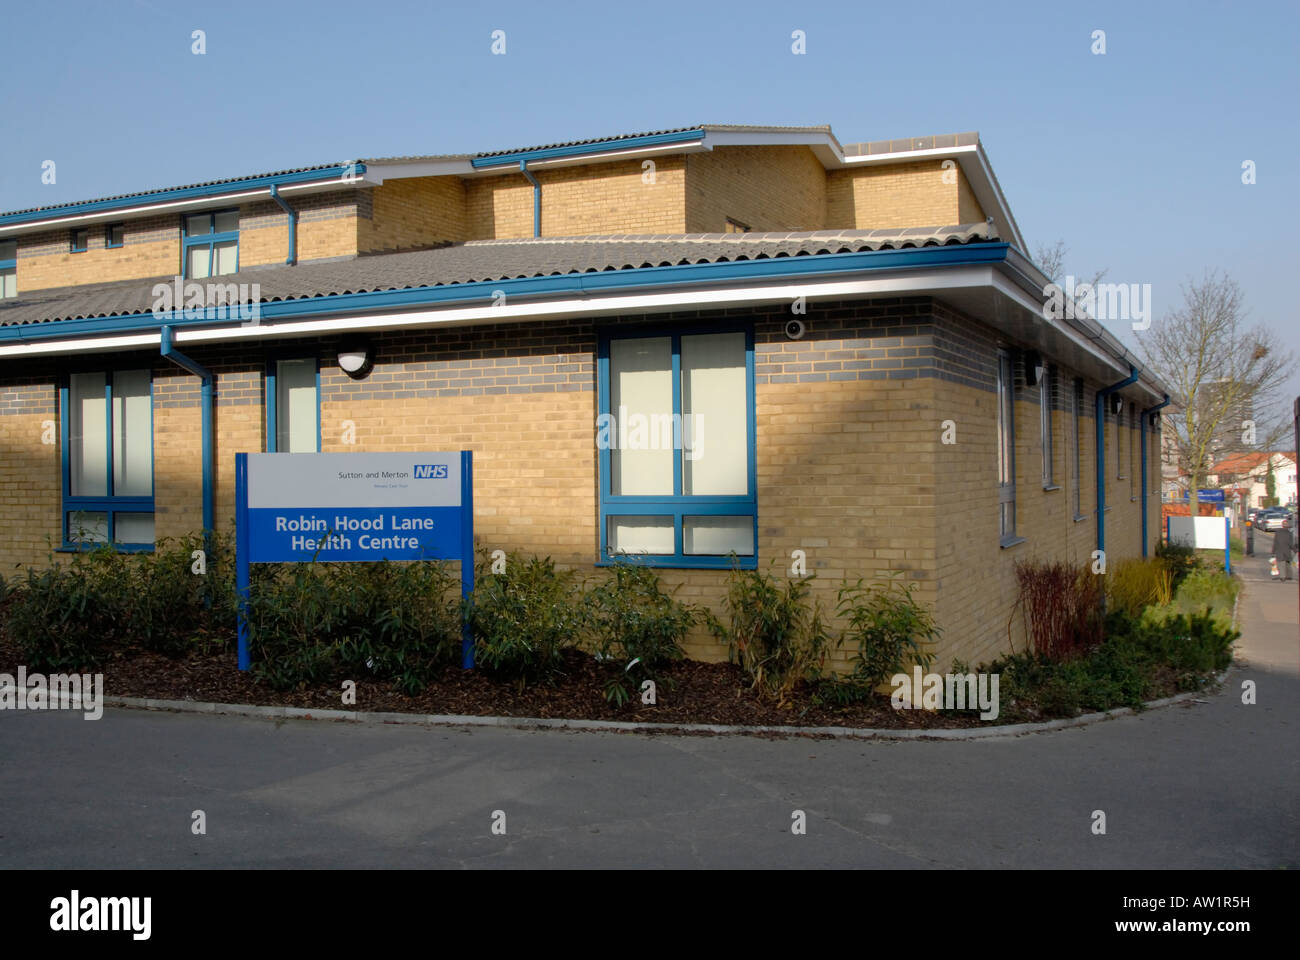 NHS National Health Service health centre in suburban southwest London, England - Stock Image